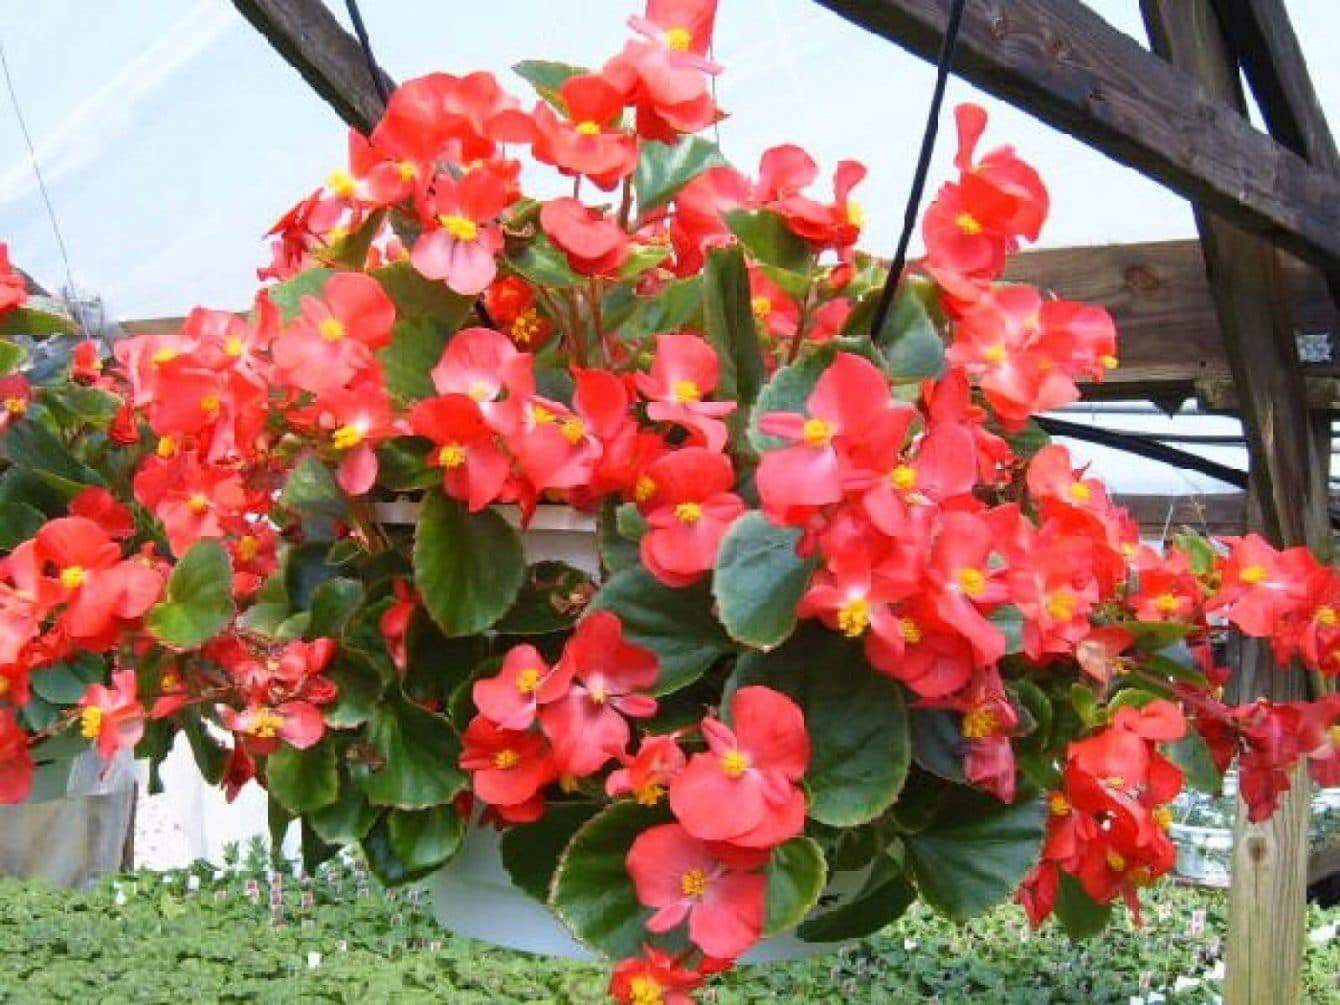 Wax Begonia Care: Do Wax Begonias Like Sun or Shade?